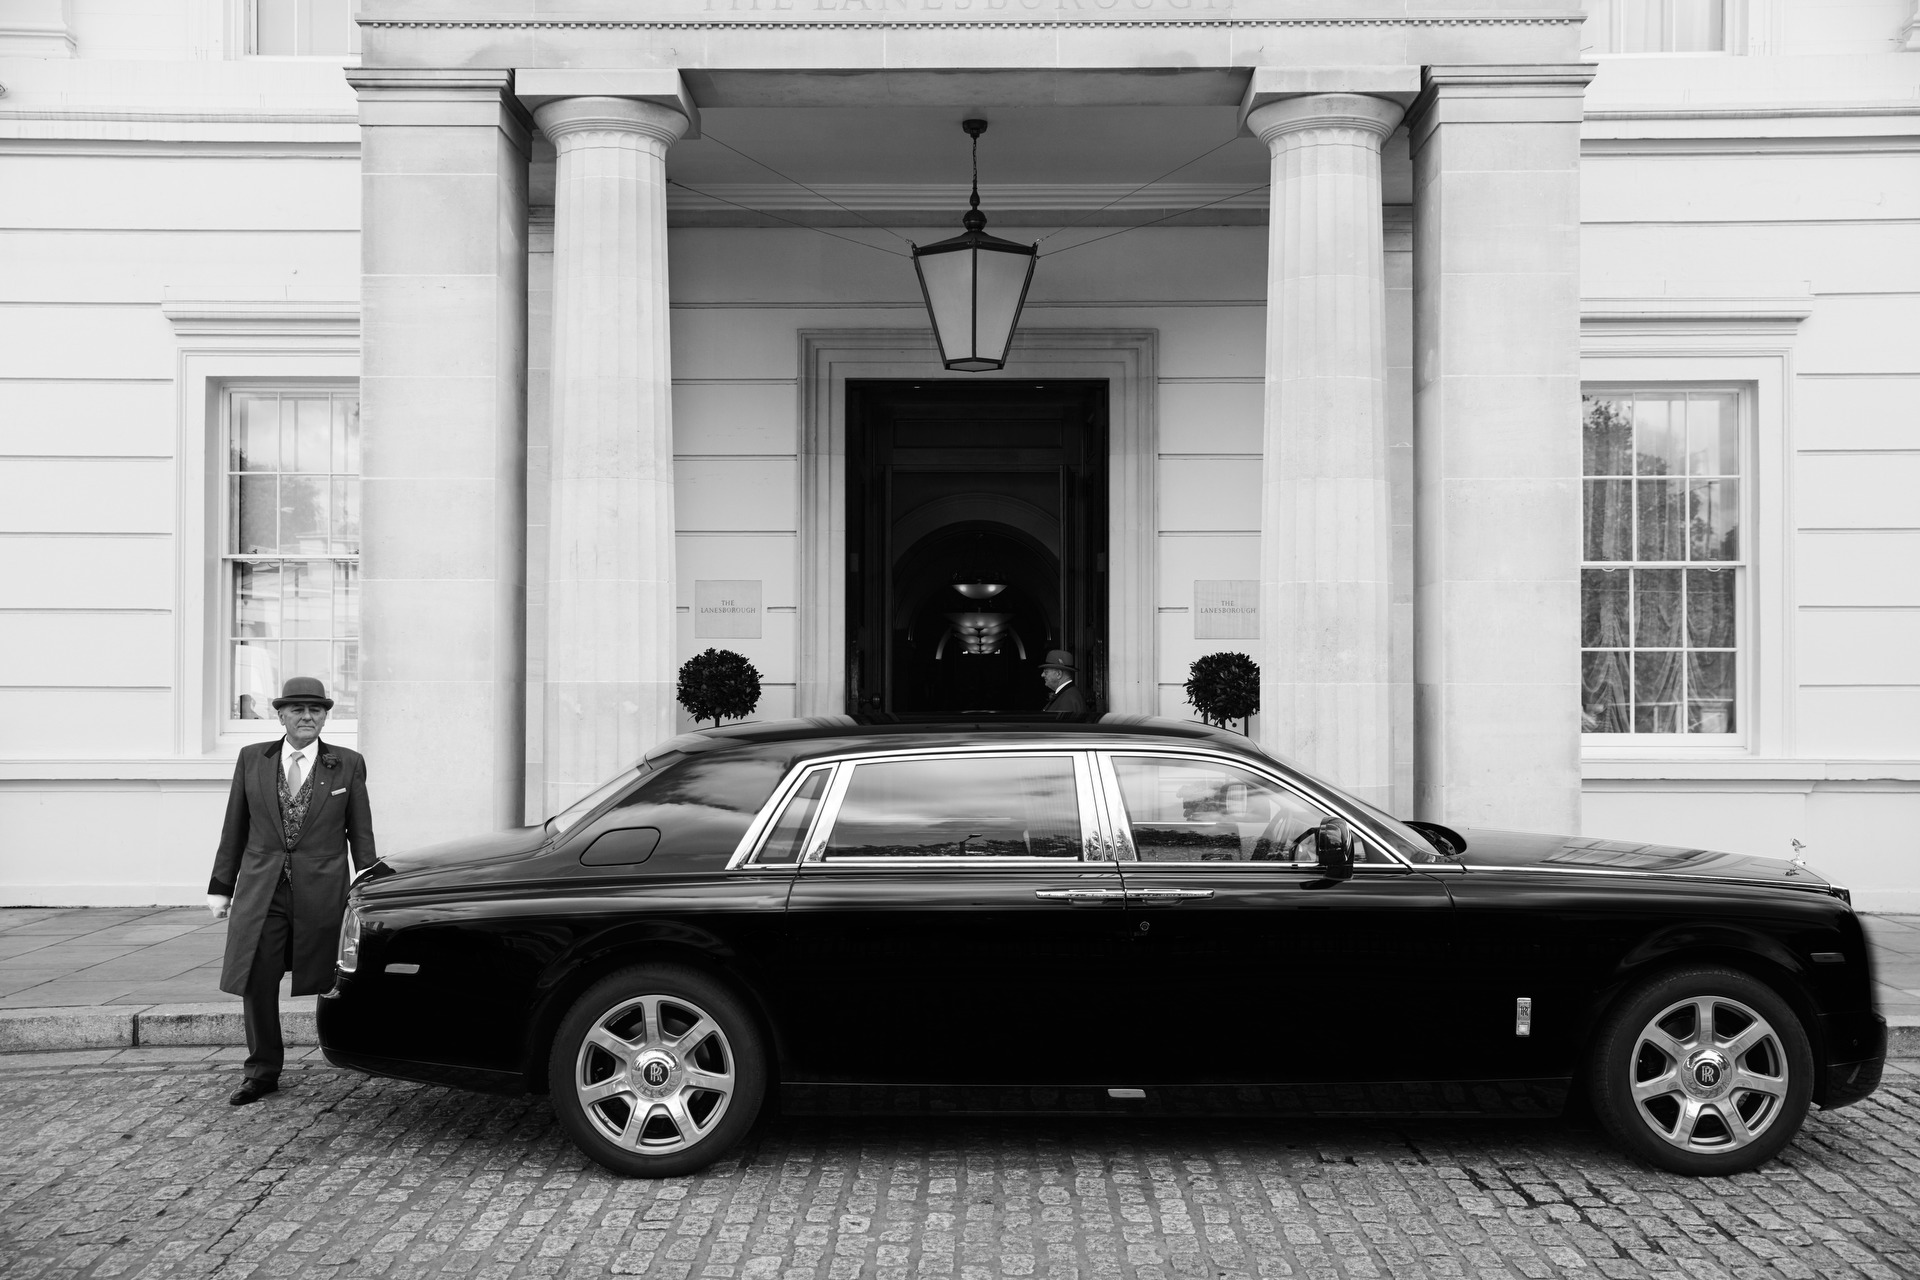 Doorman welcomes a guest in The Lanesborough Rolls Royce